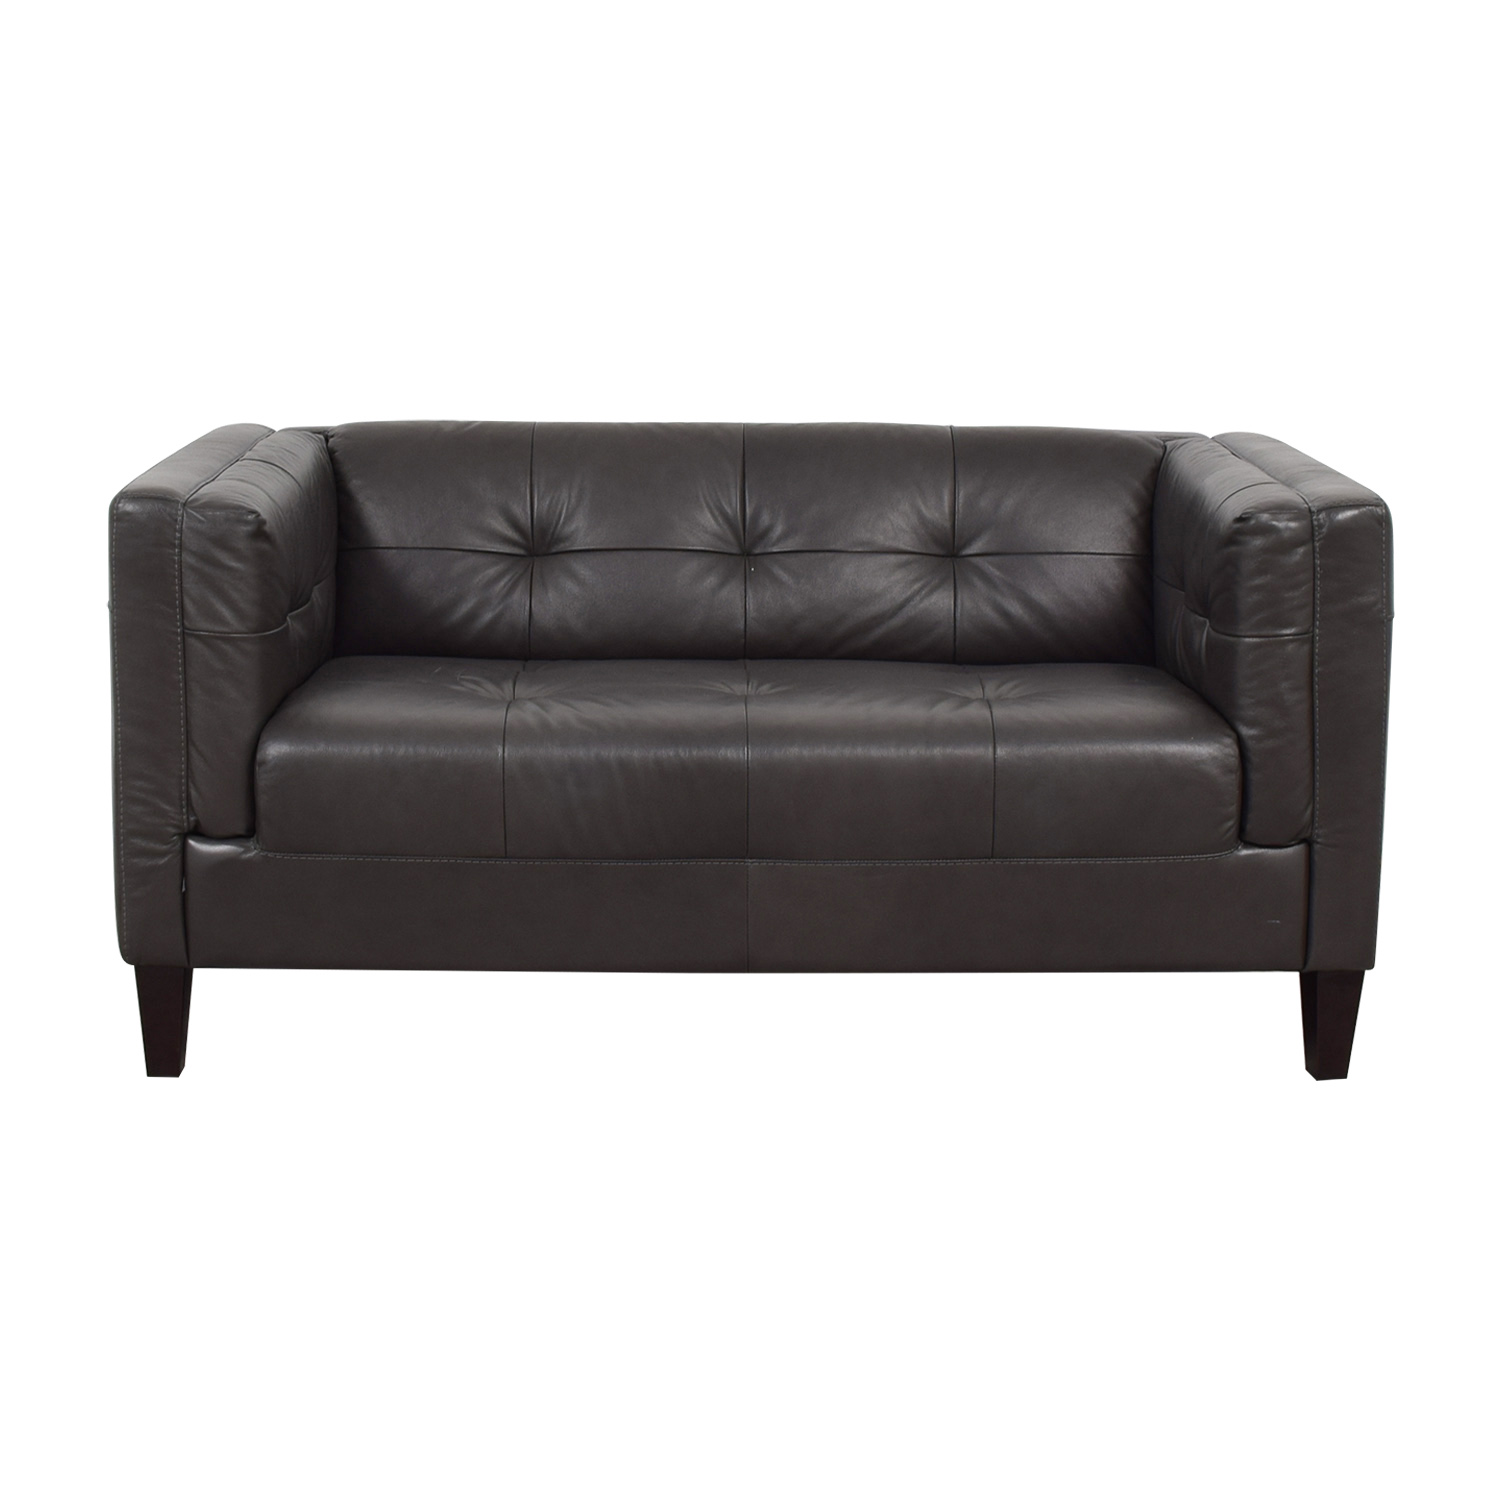 Raymour & Flanigan Raymour & Flanigan Bartolo Grey Tufted Leather Loveseat for sale